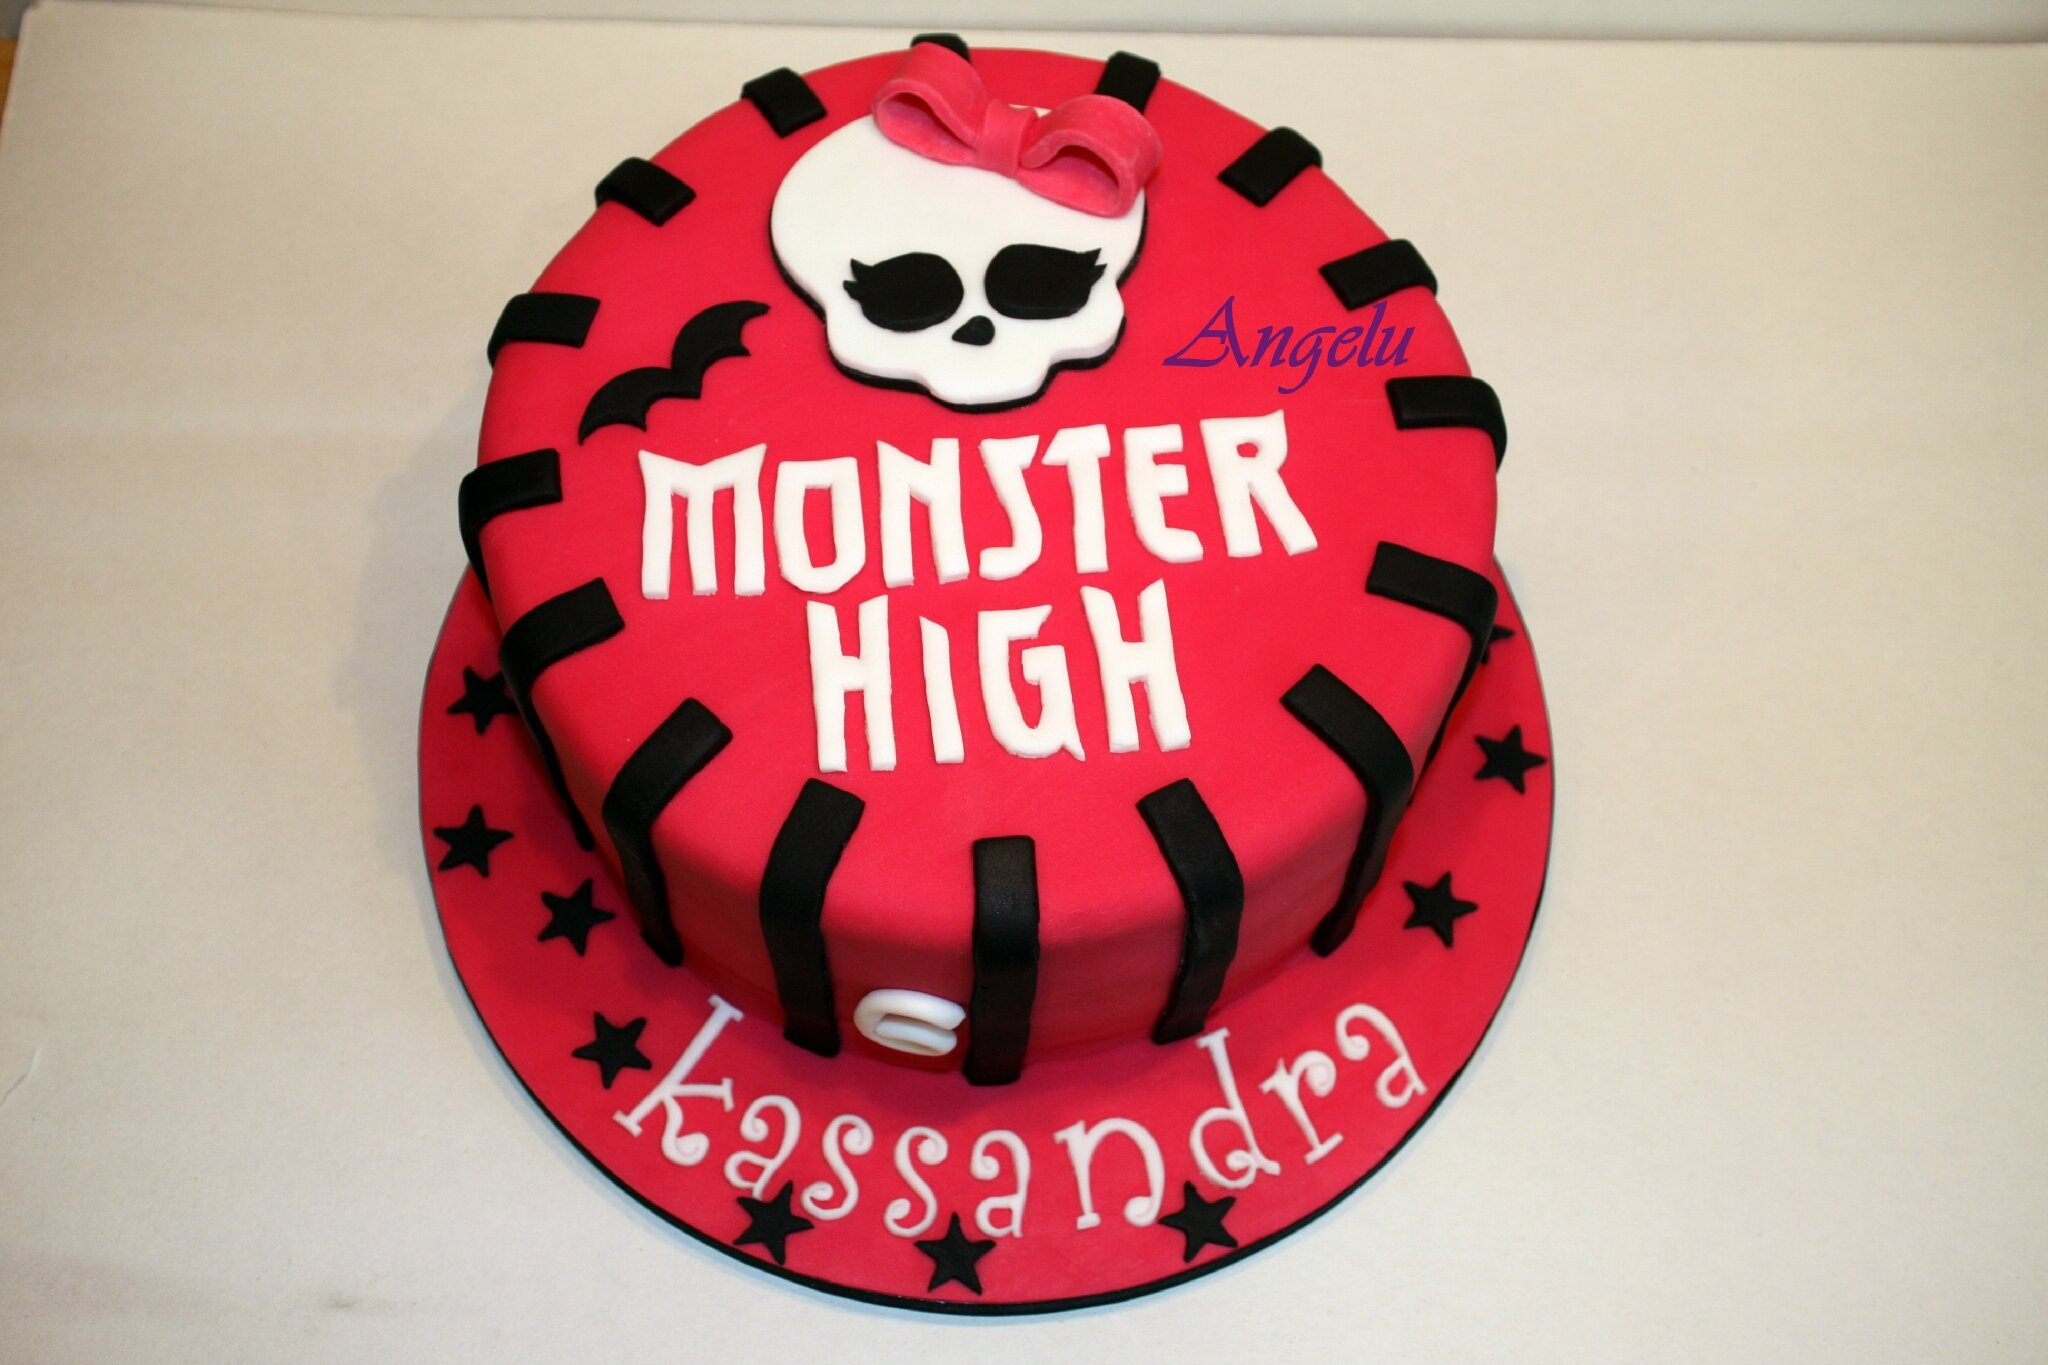 Très Gâteau Monster High - MA PETITE PATISSERIE (Contact : isilda@neuf.fr) HK75